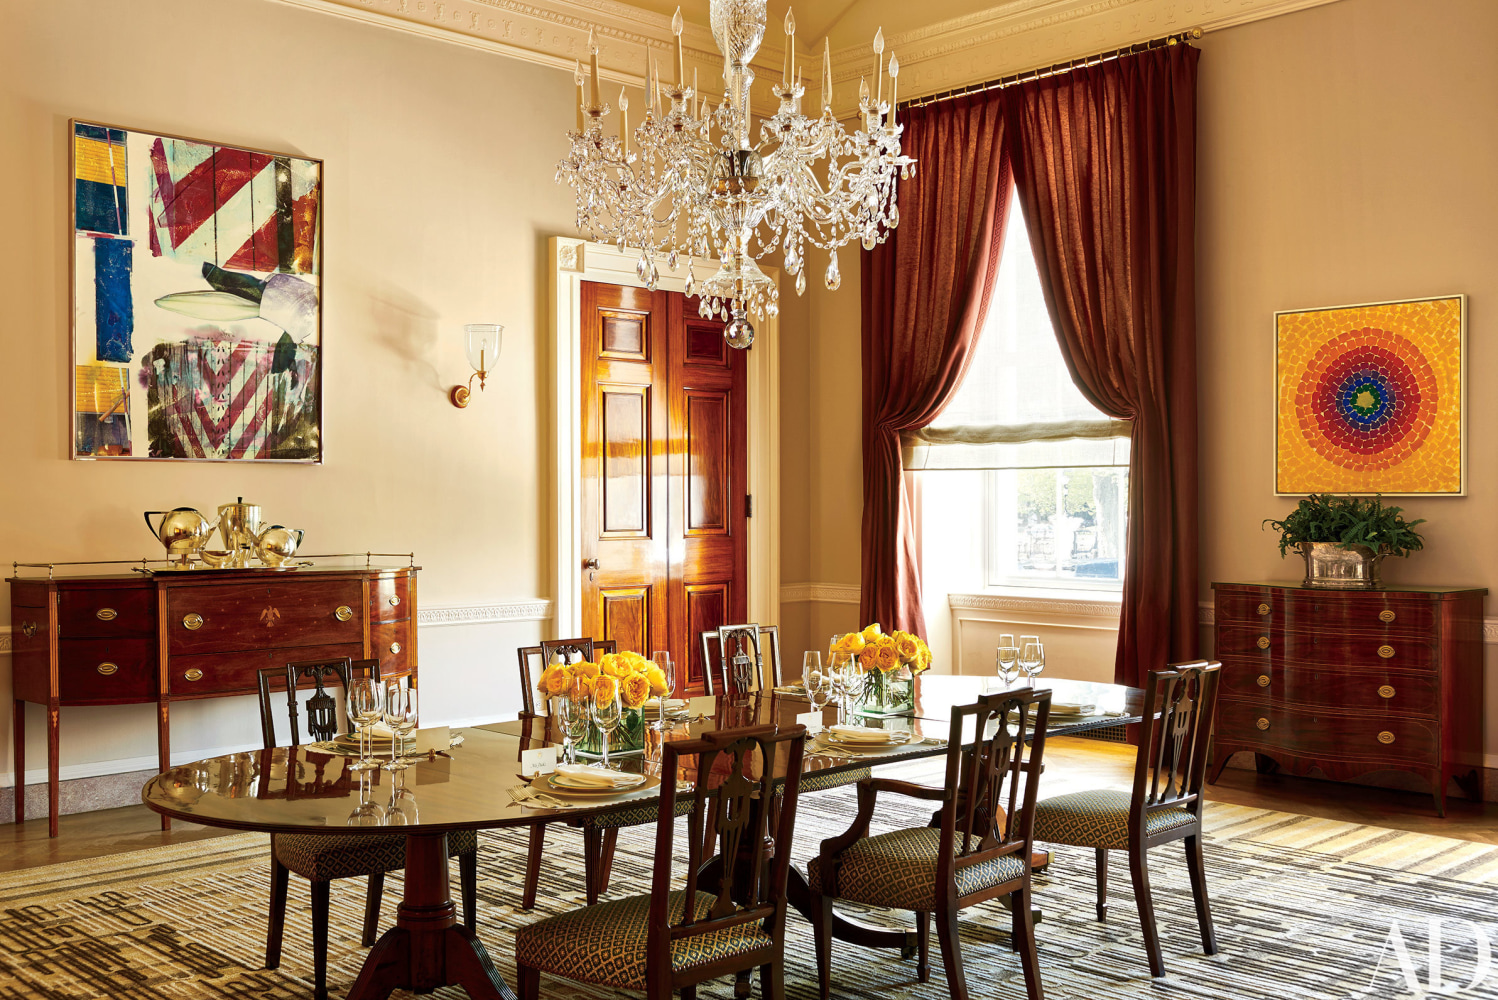 Look inside the obamas 39 stylish white house home nbc news for In n out dining room hours